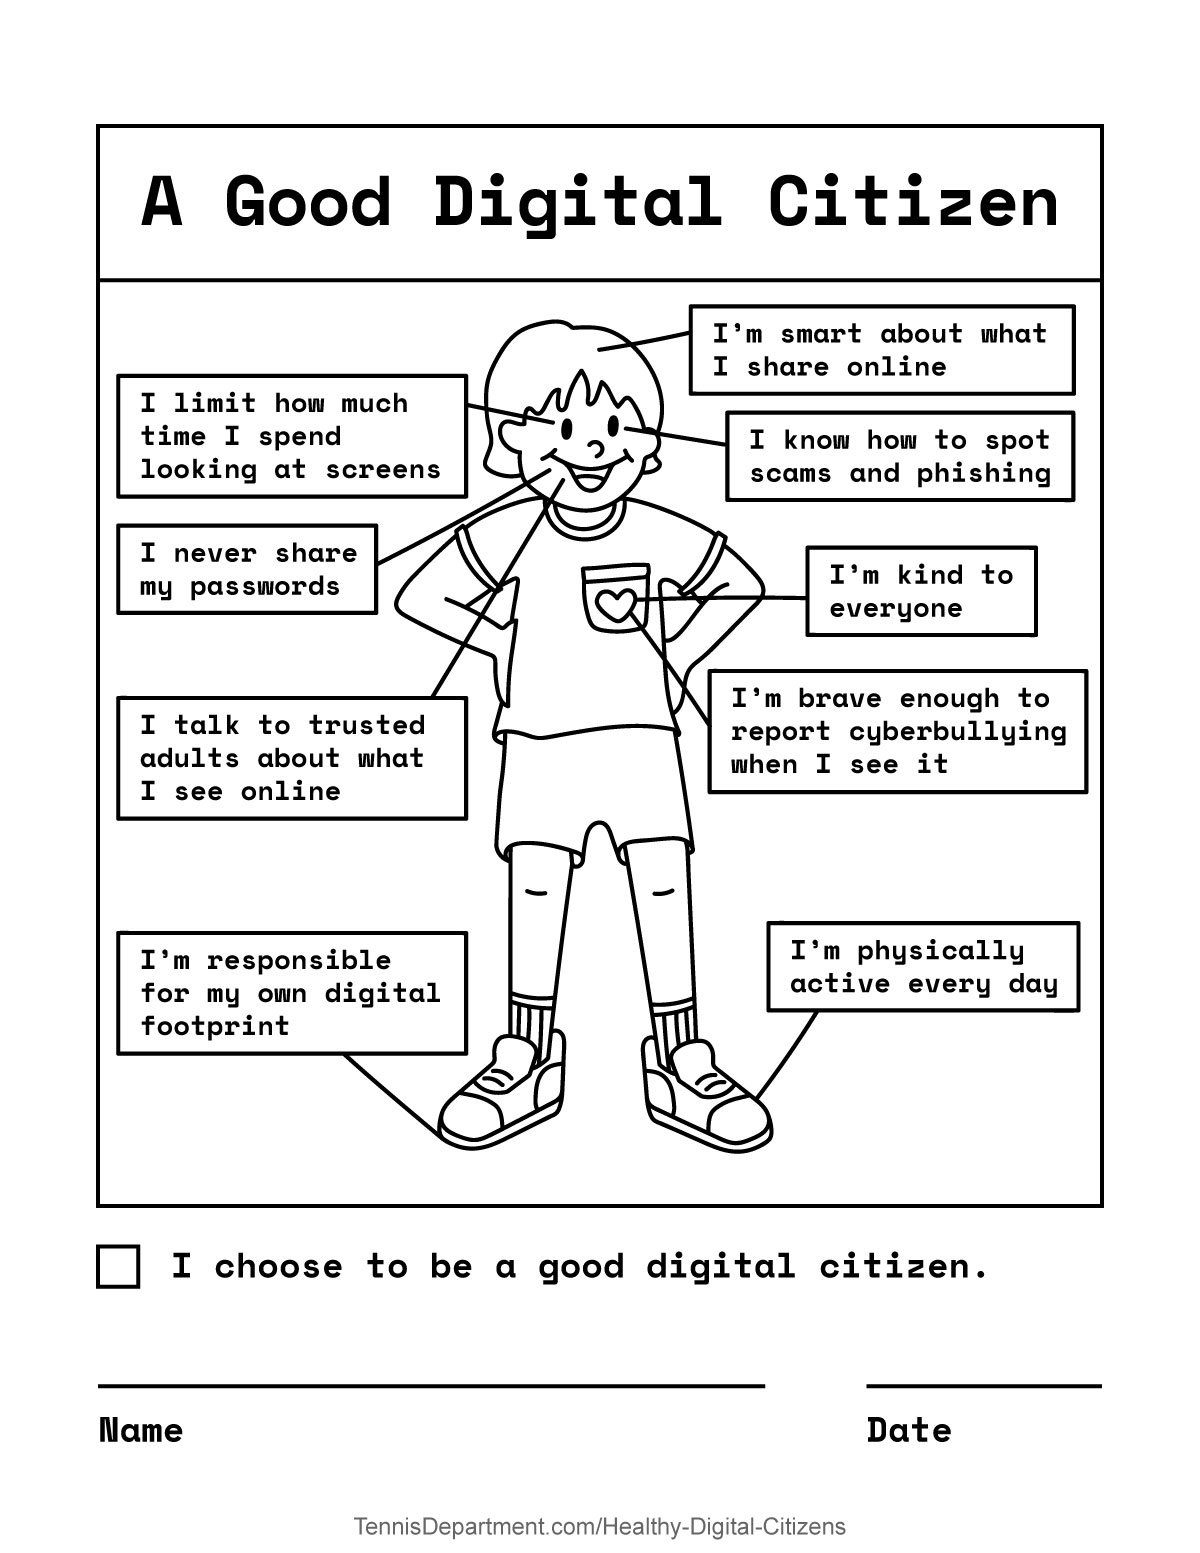 Good Digital Citizen - Worksheet for kids to learn about good digital citizenship and internet safety